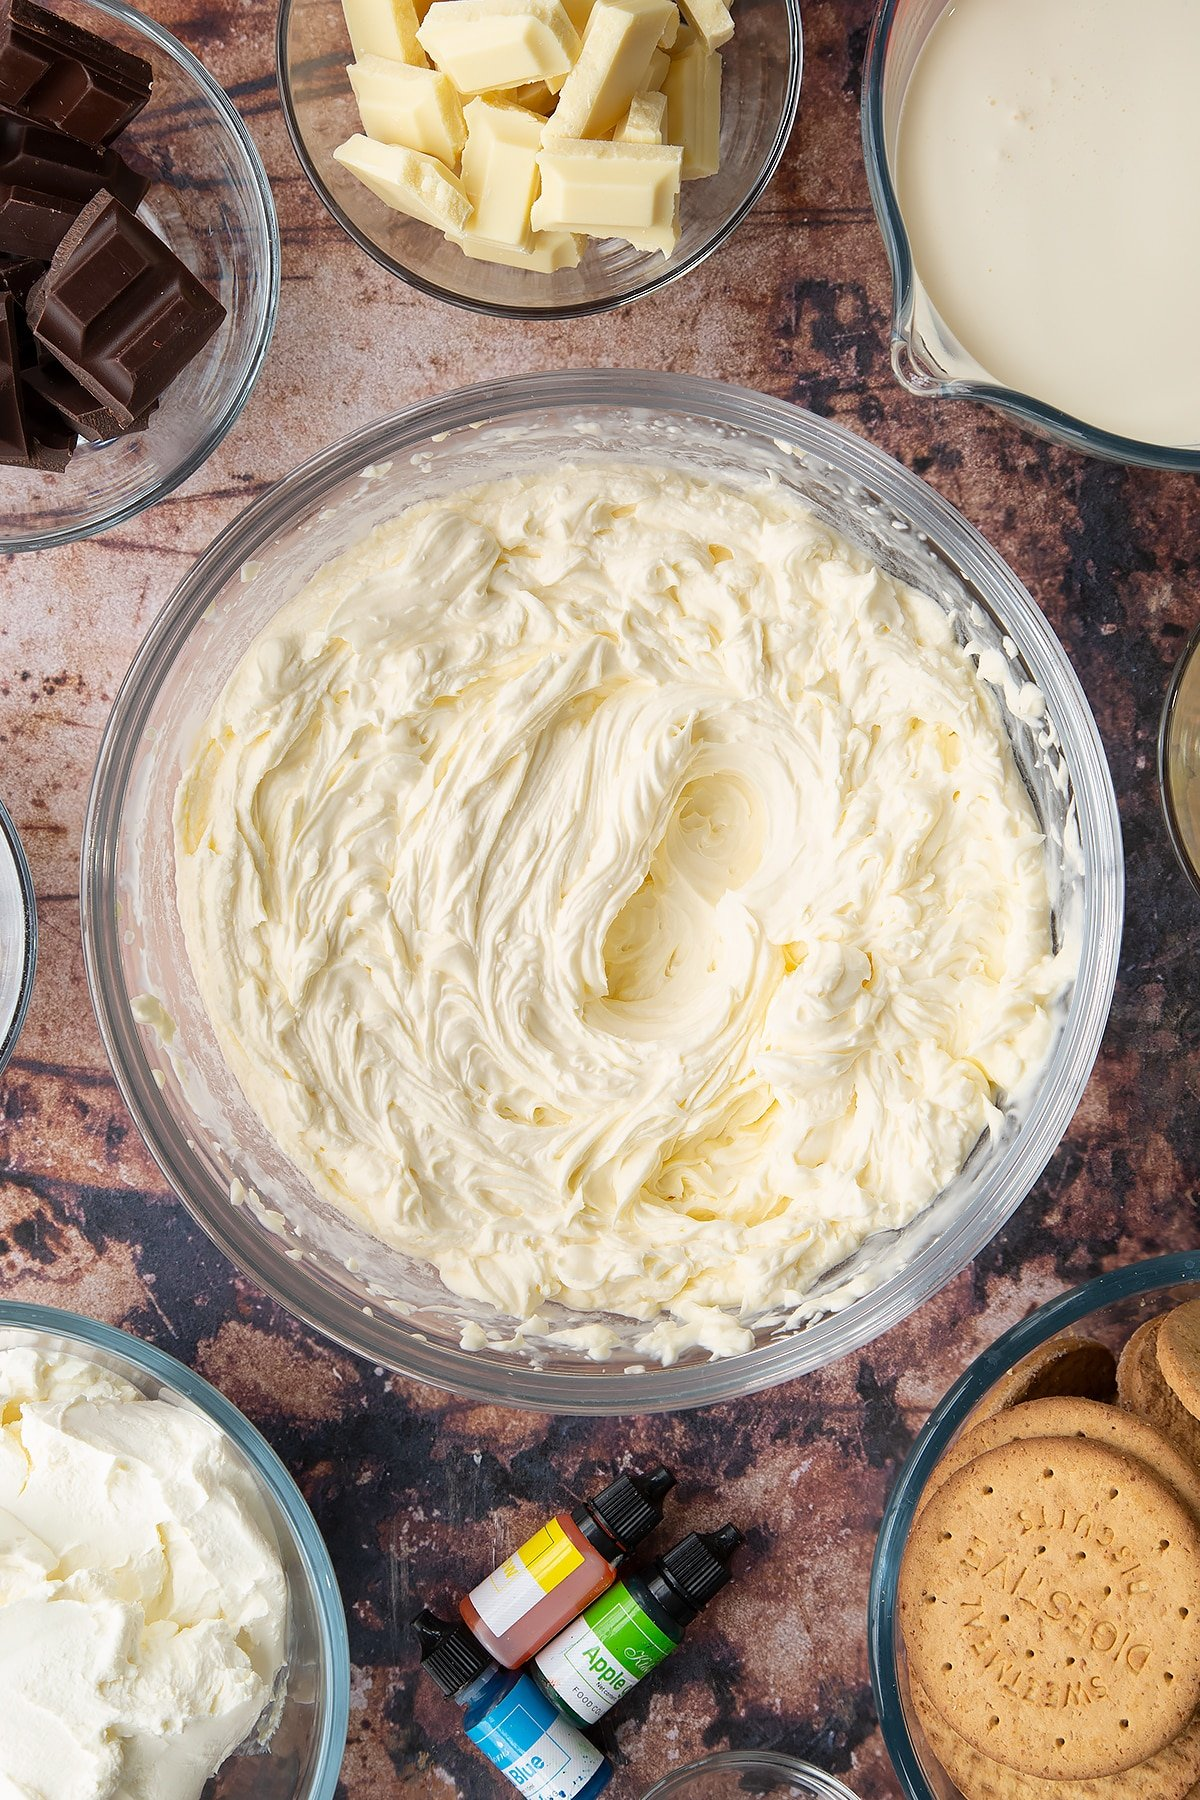 Double cream, cream cheese, peppermint extract and sugar, whisked together in a glass bowl. Ingredients to make no bake mint cheesecake surround the bowl.